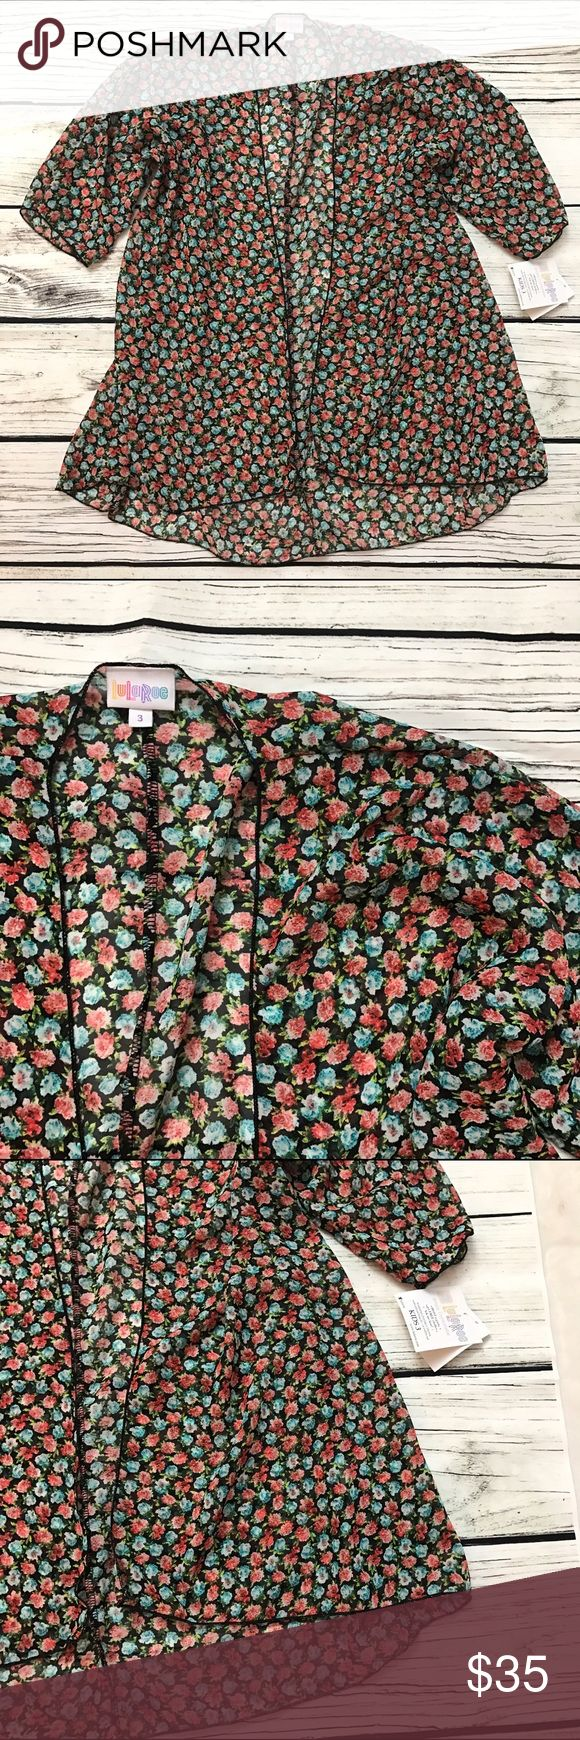 NWT LULAROE Bianka Floral Kimono Cardigan 3 LULAROE Bianka Floral Kimono Cardigan - kids 3. Could also fit an adult S/M. Brand new with tags. LuLaRoe Shirts & Tops